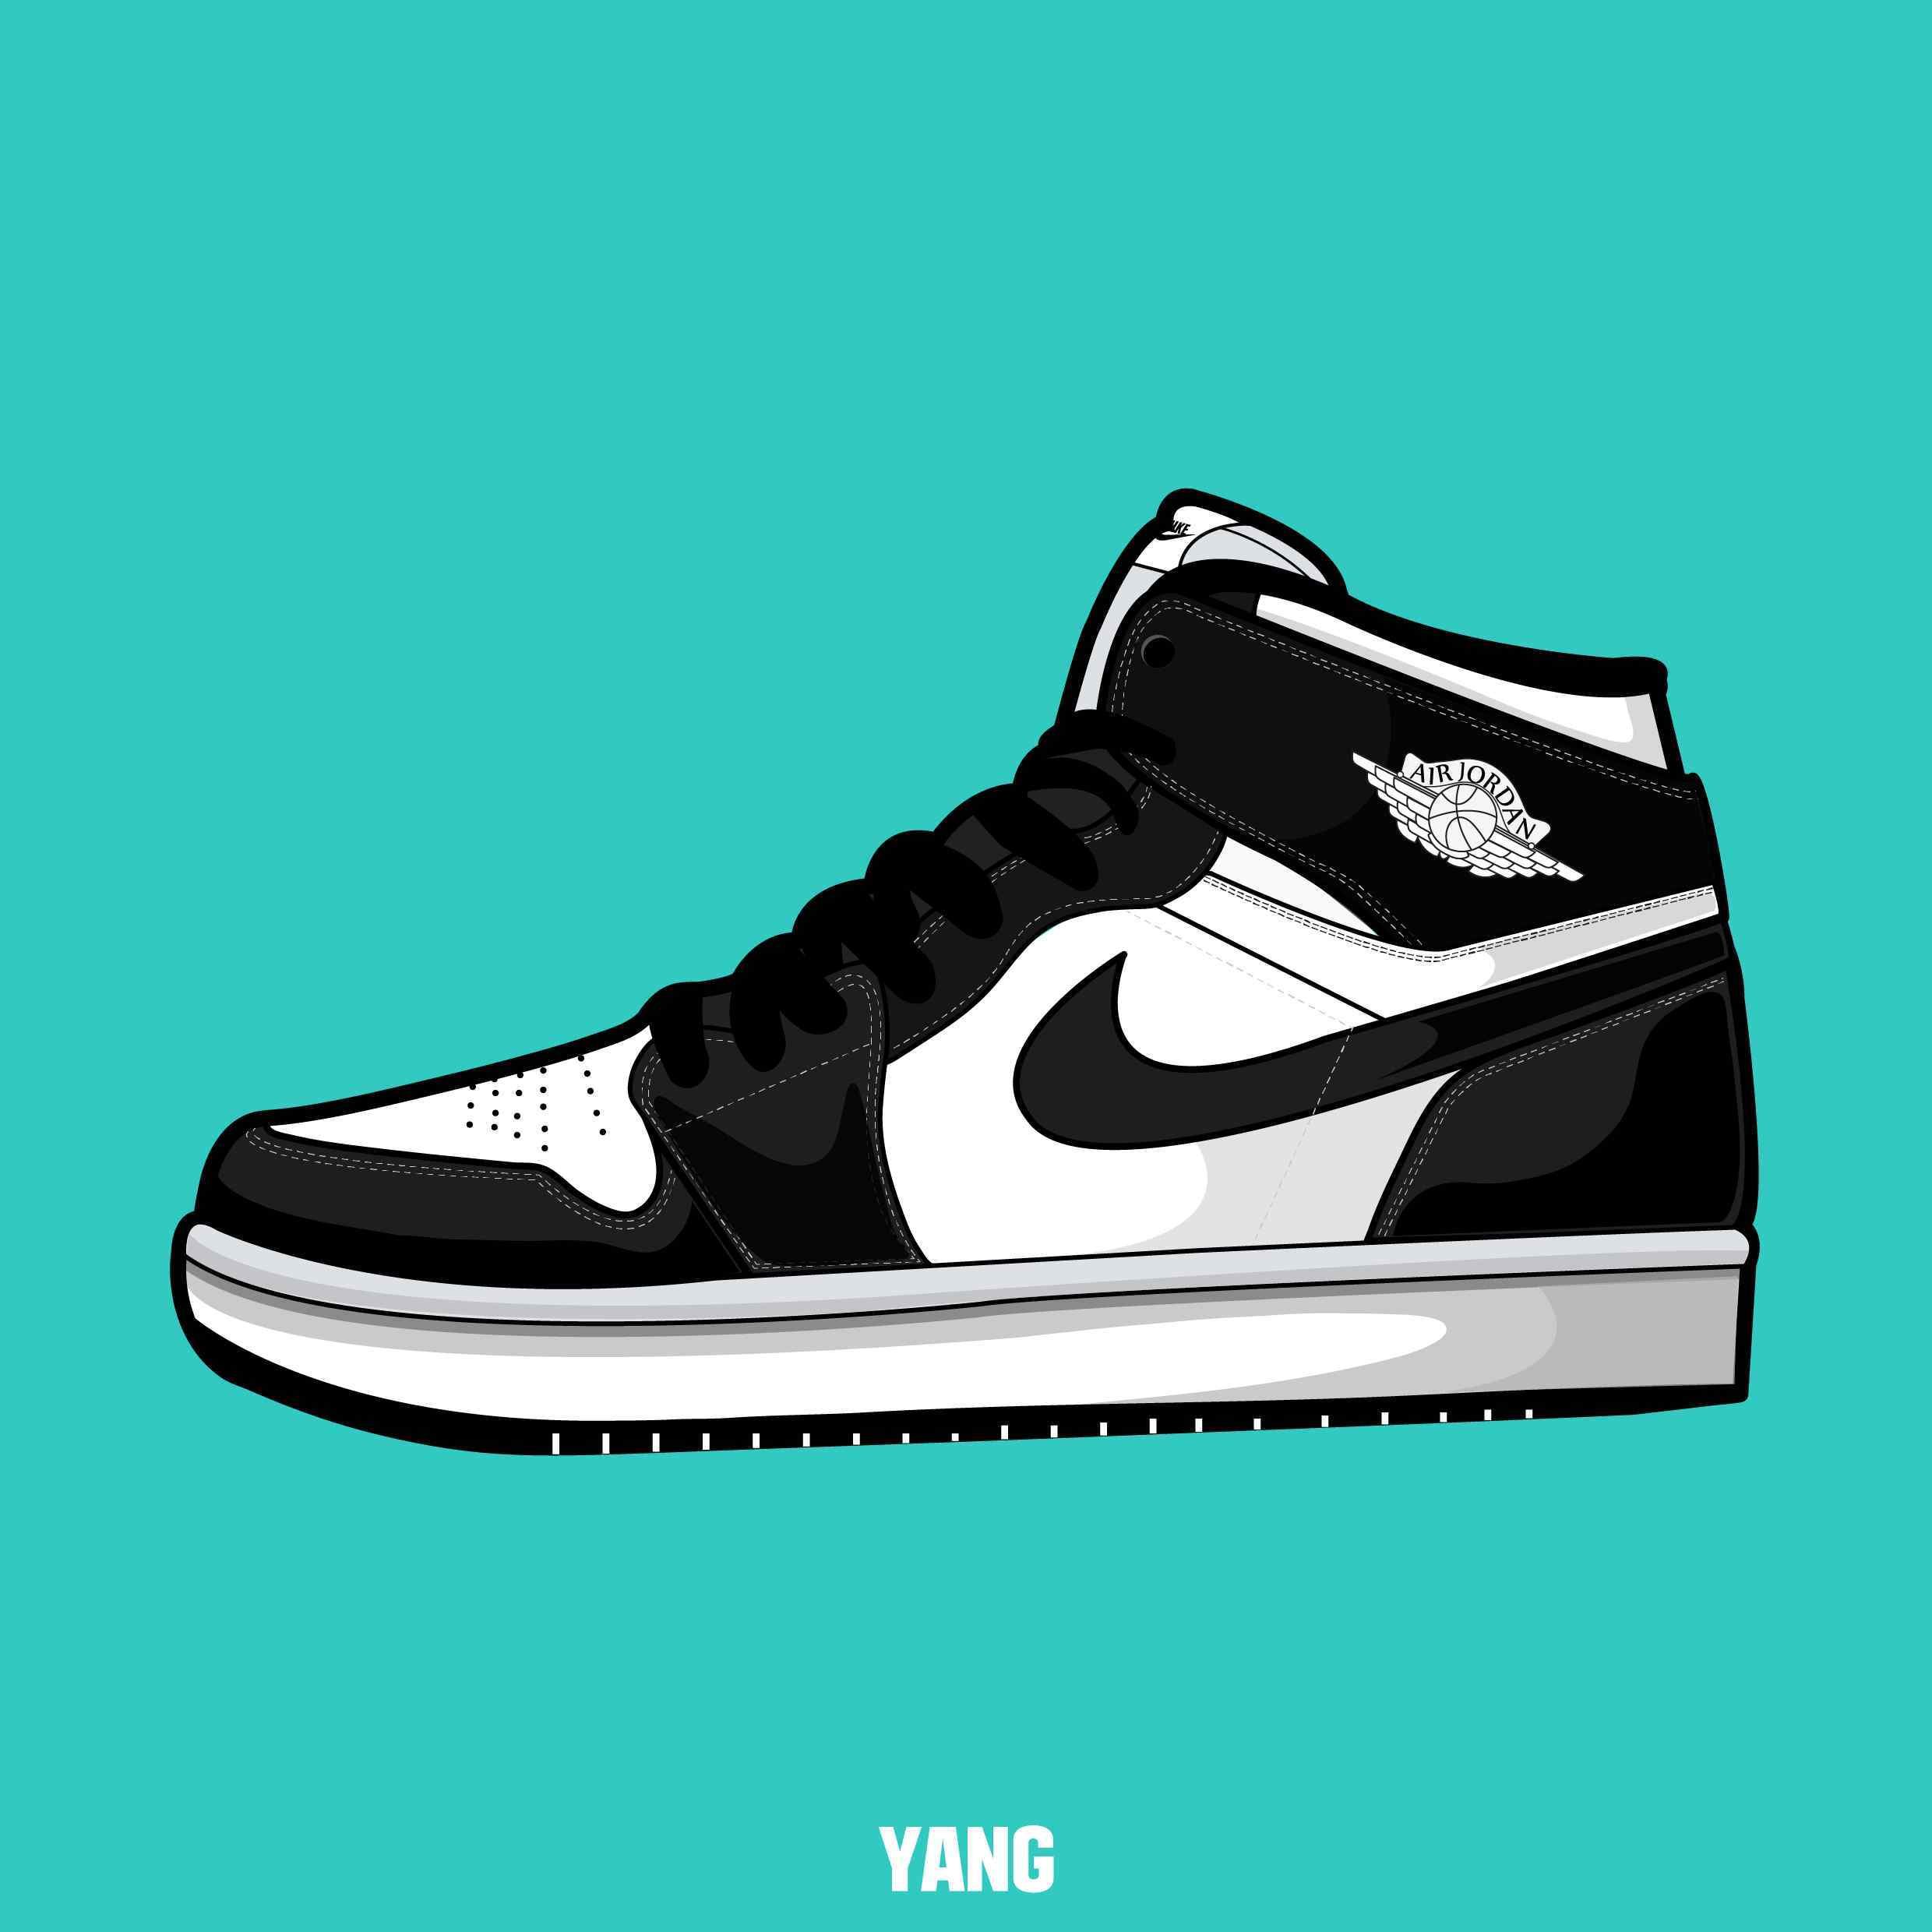 2480x2480 shoes teen nike air force unique nike shoes drawing at getdrawings